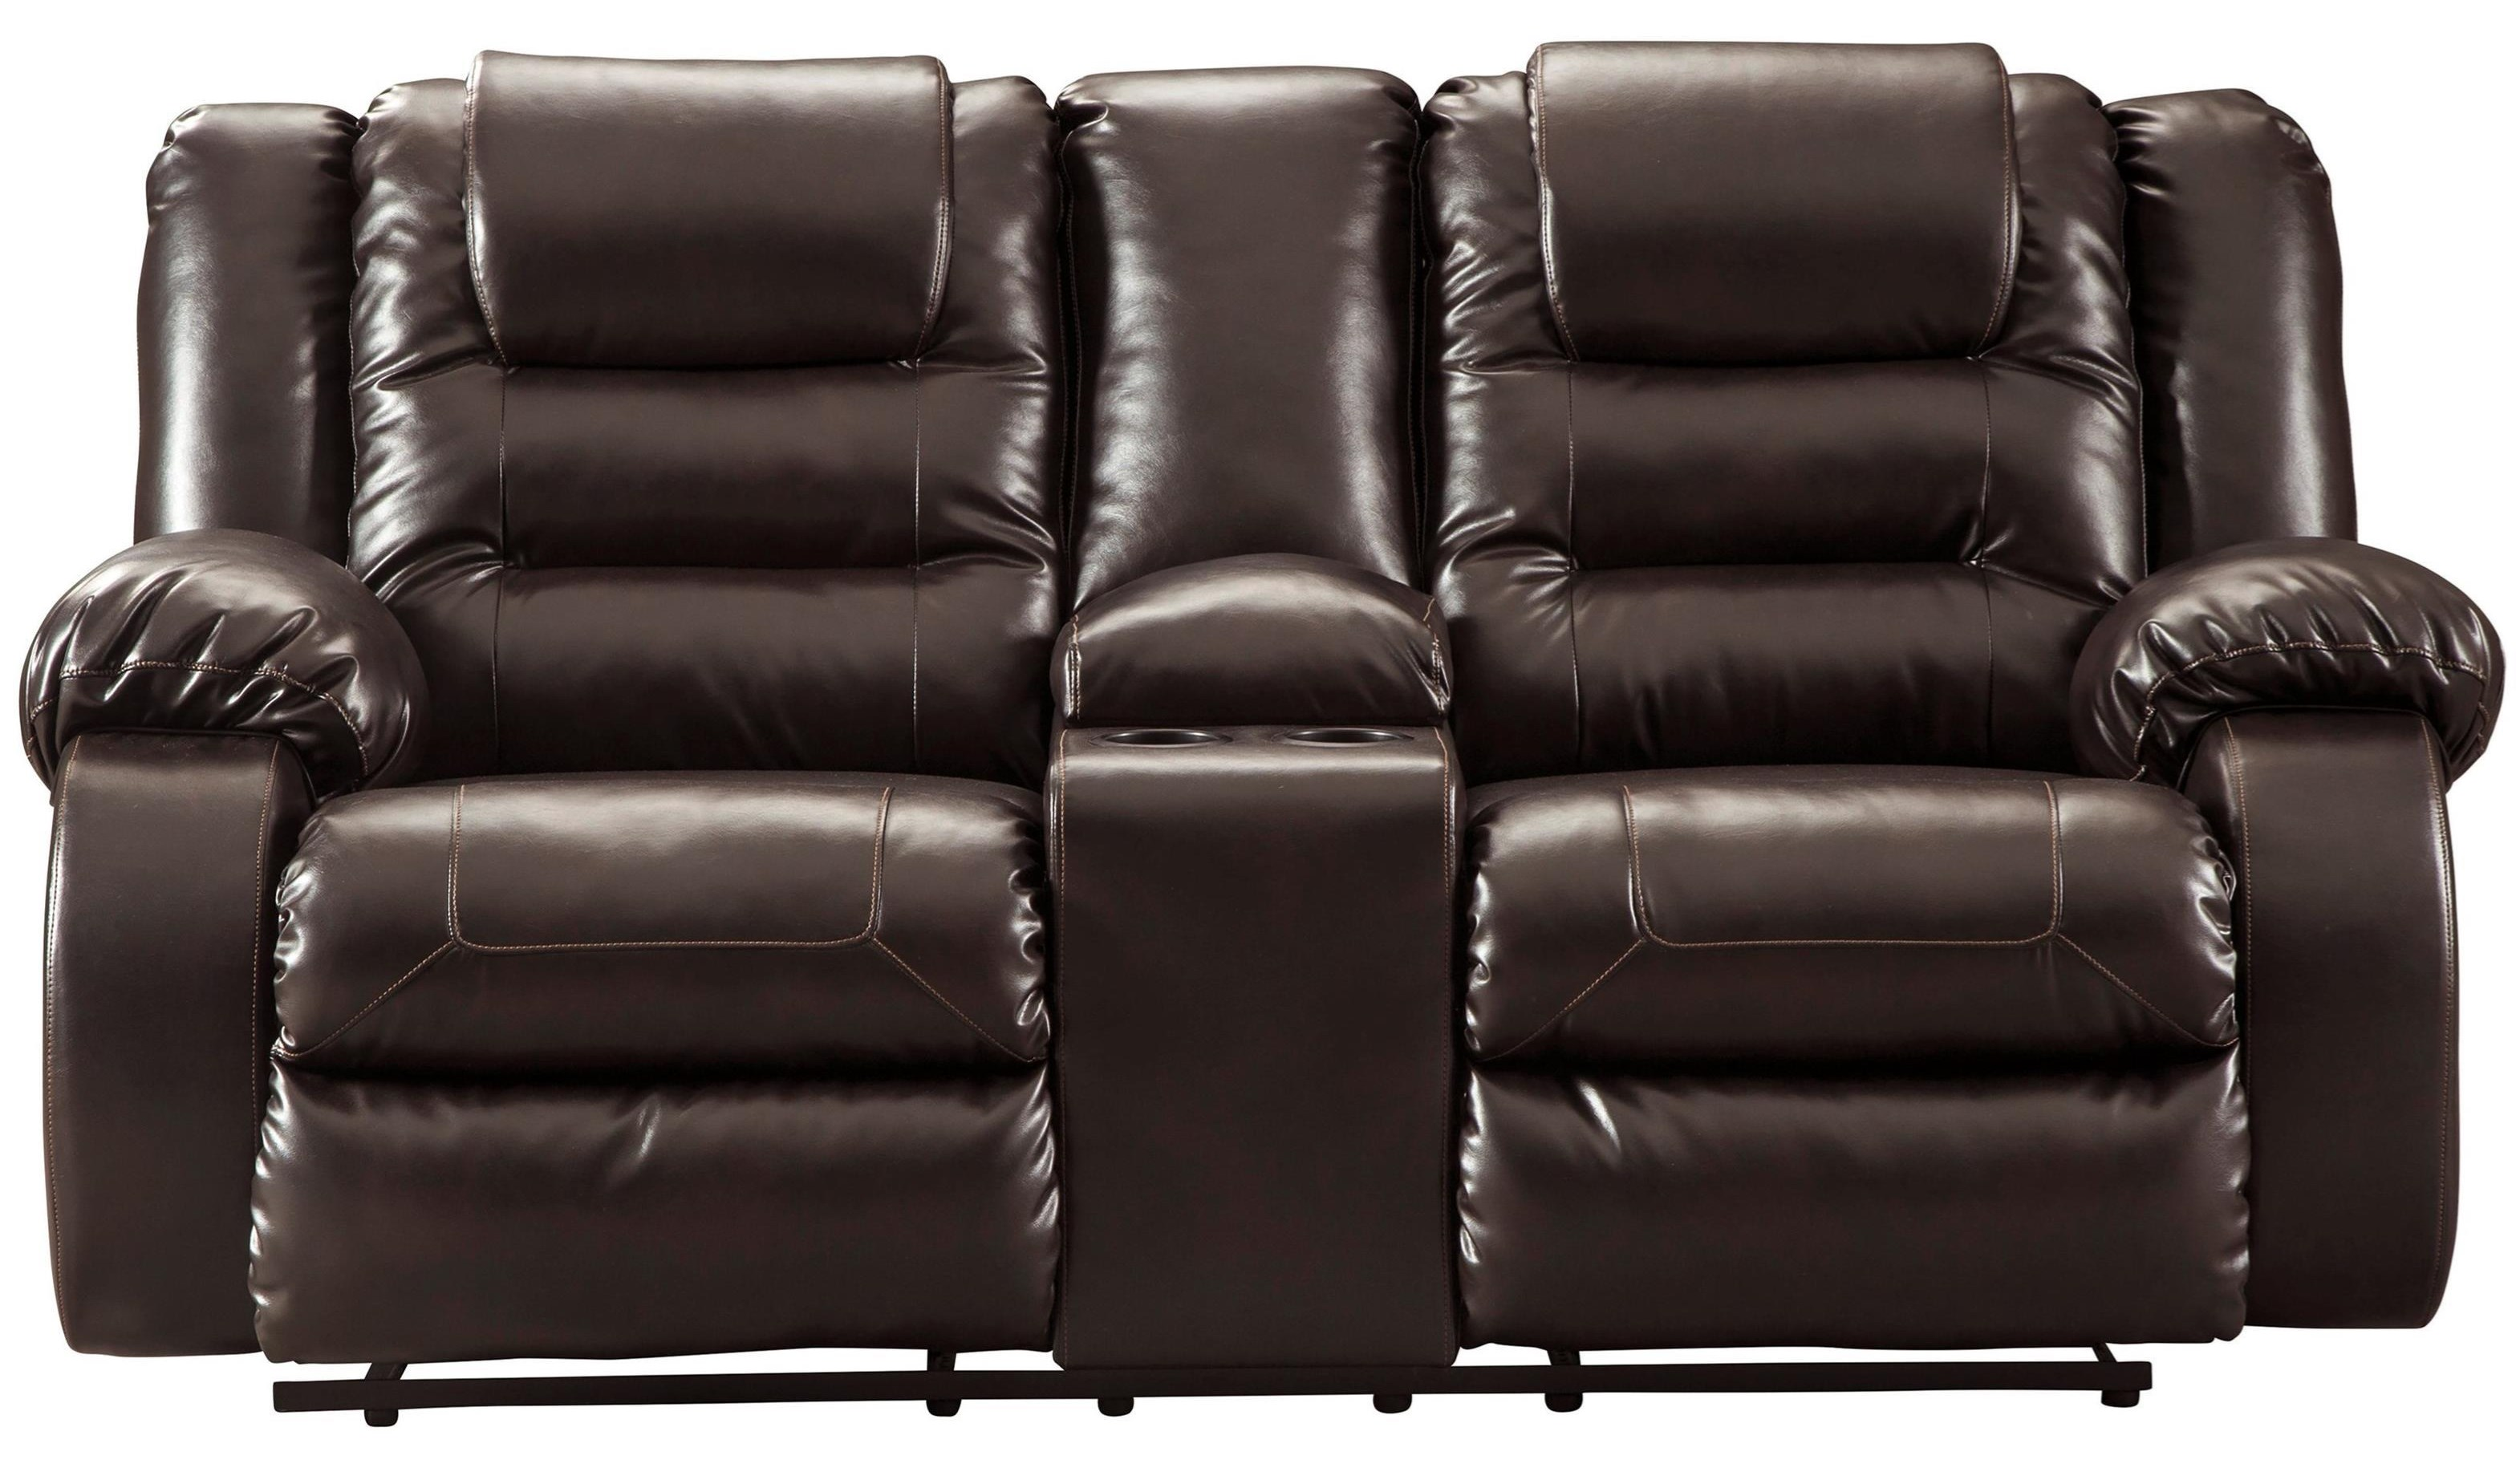 Reclining Loveseat JUST $399 with Your Purch